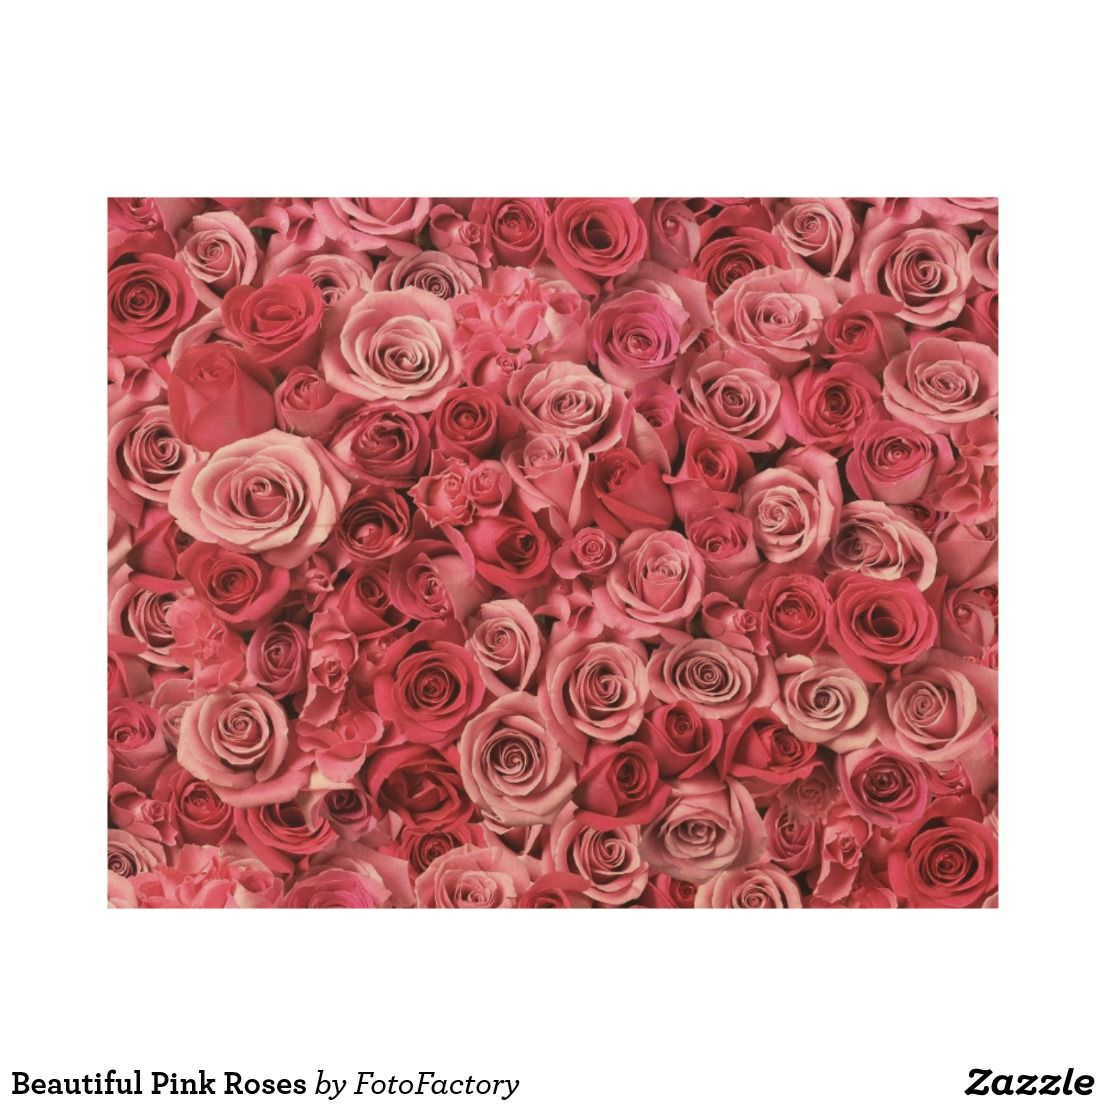 Beautiful Pink Roses Wood Wall Decor Zazzle Com With Images